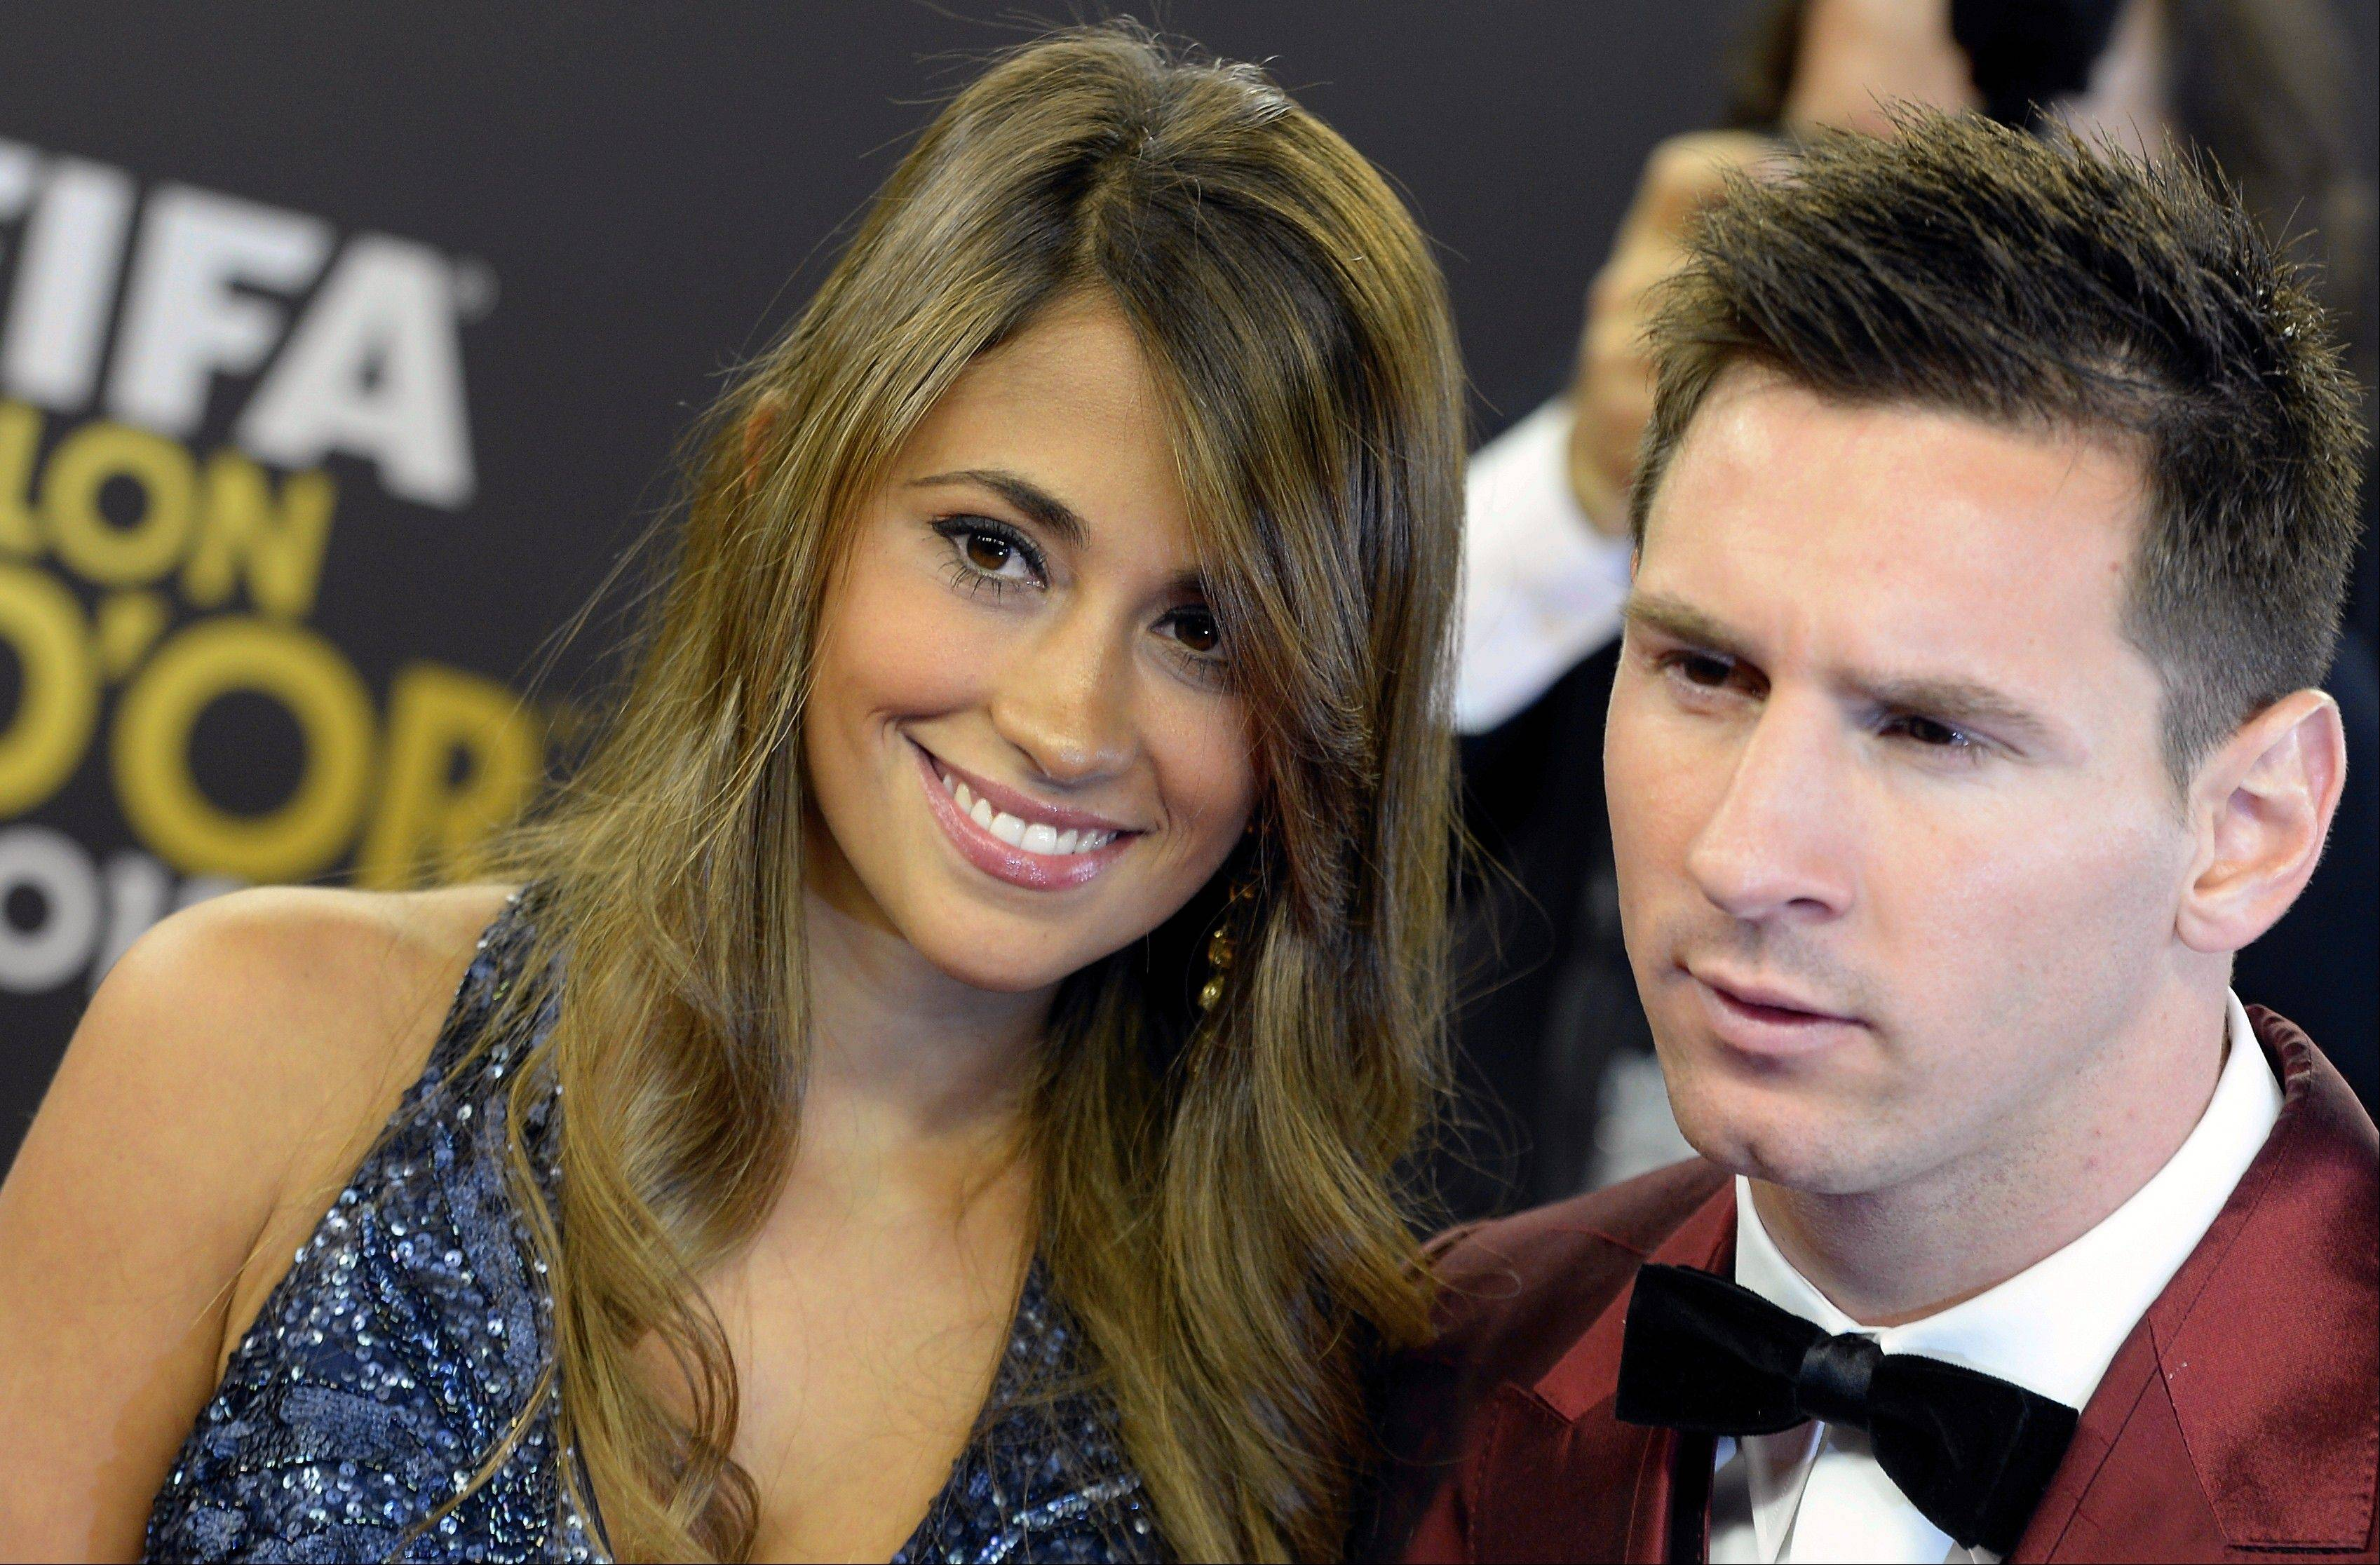 Soccer player Lionel Messi, right, of Argentina arrives with his wife Antonella, left, on the red carpet prior to the FIFA Ballon d'Or 2013 gala held at the Kongresshaus in Zurich, Switzerland, Monday, Jan. 13, 2014.